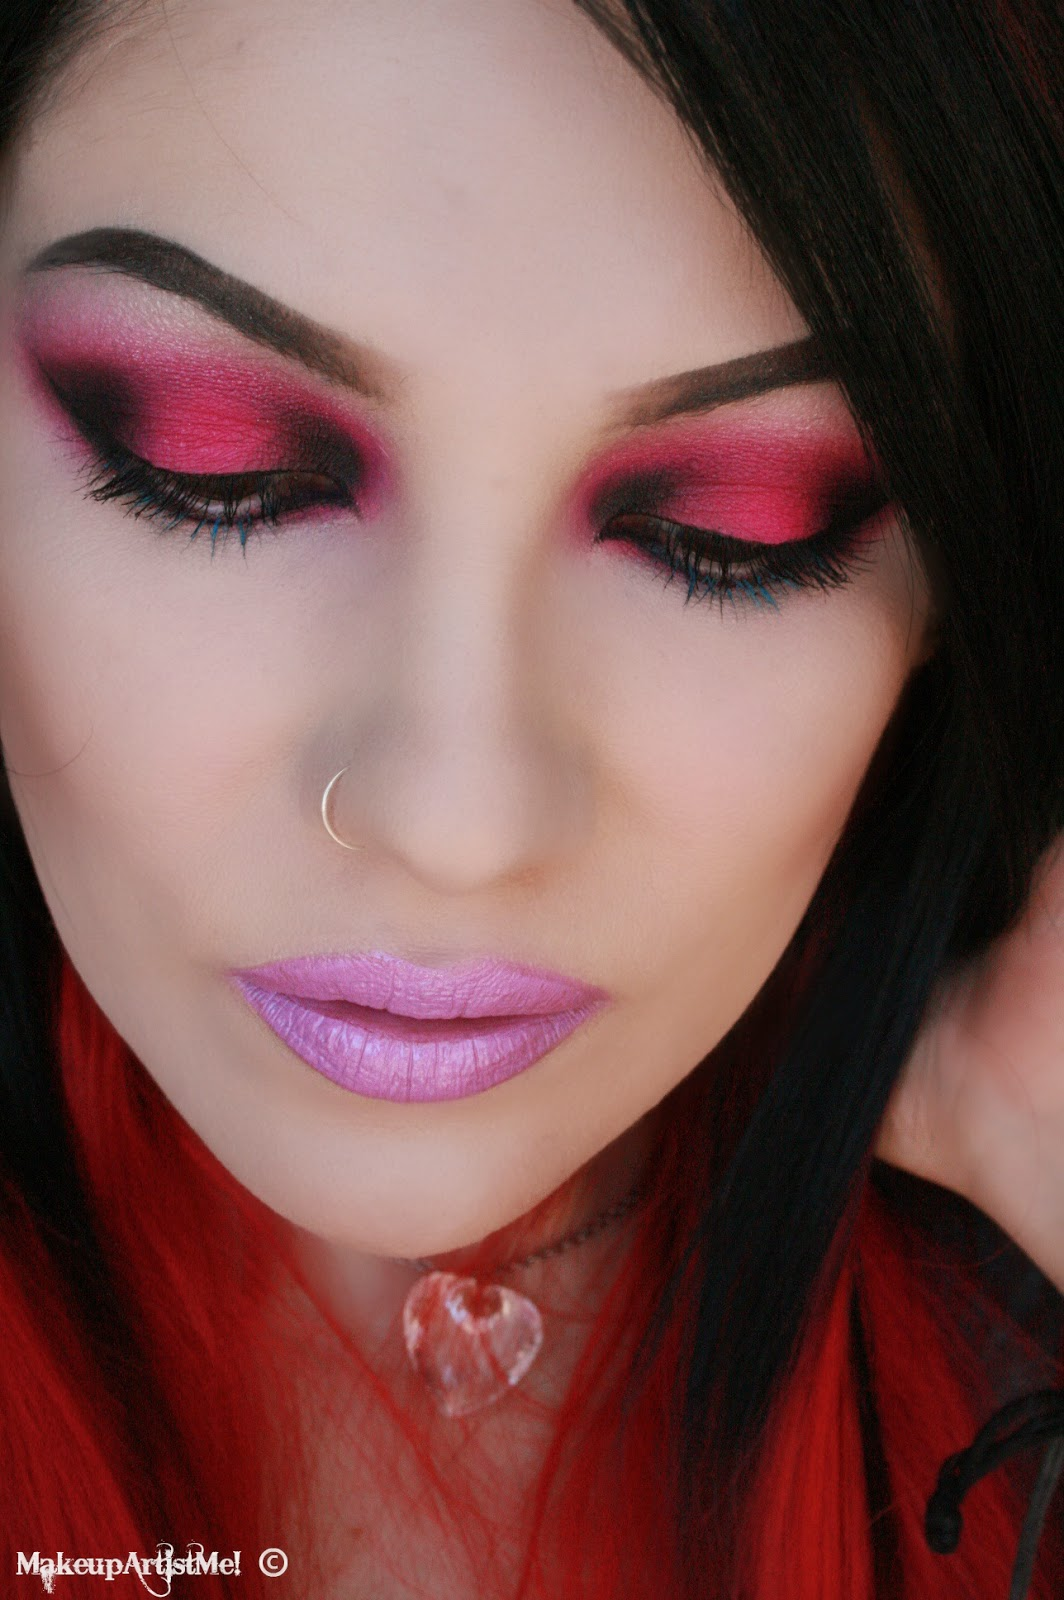 Make Up Fashion And 50 Shades Of Pink: Make-up Artist Me!: Rock Chick! Makeup Tutorial